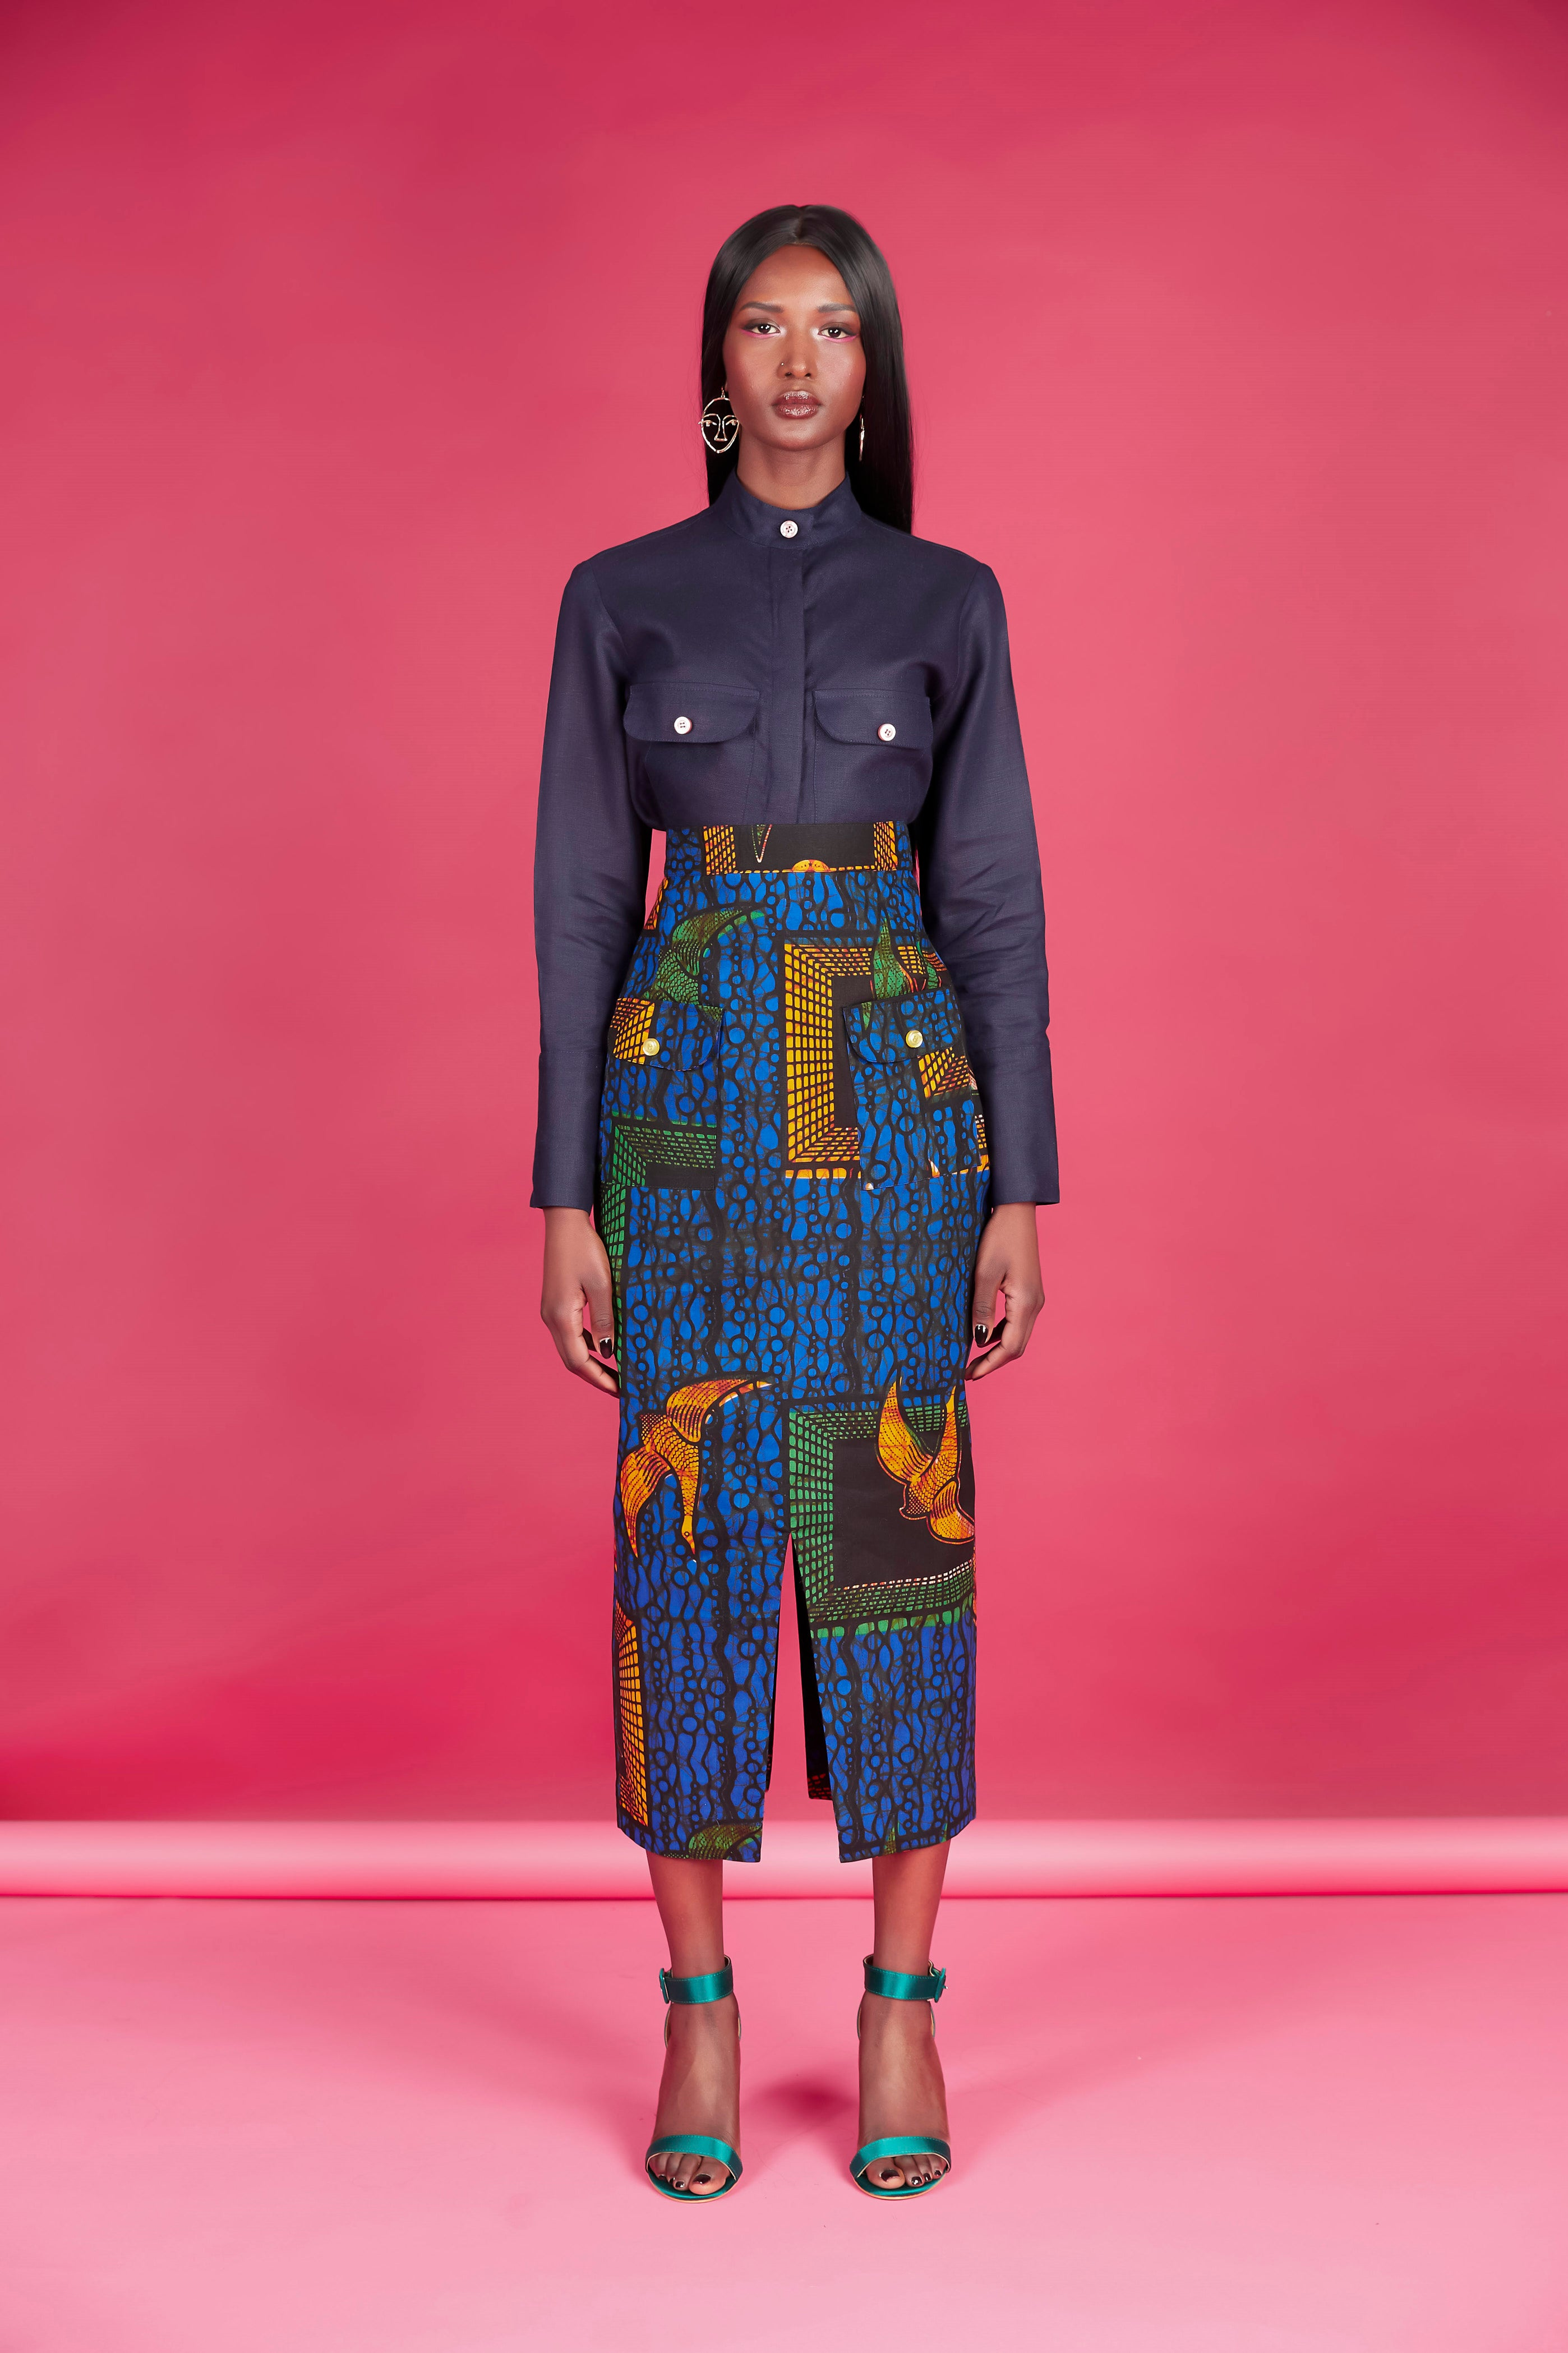 Utambulisho High Waist Skirt